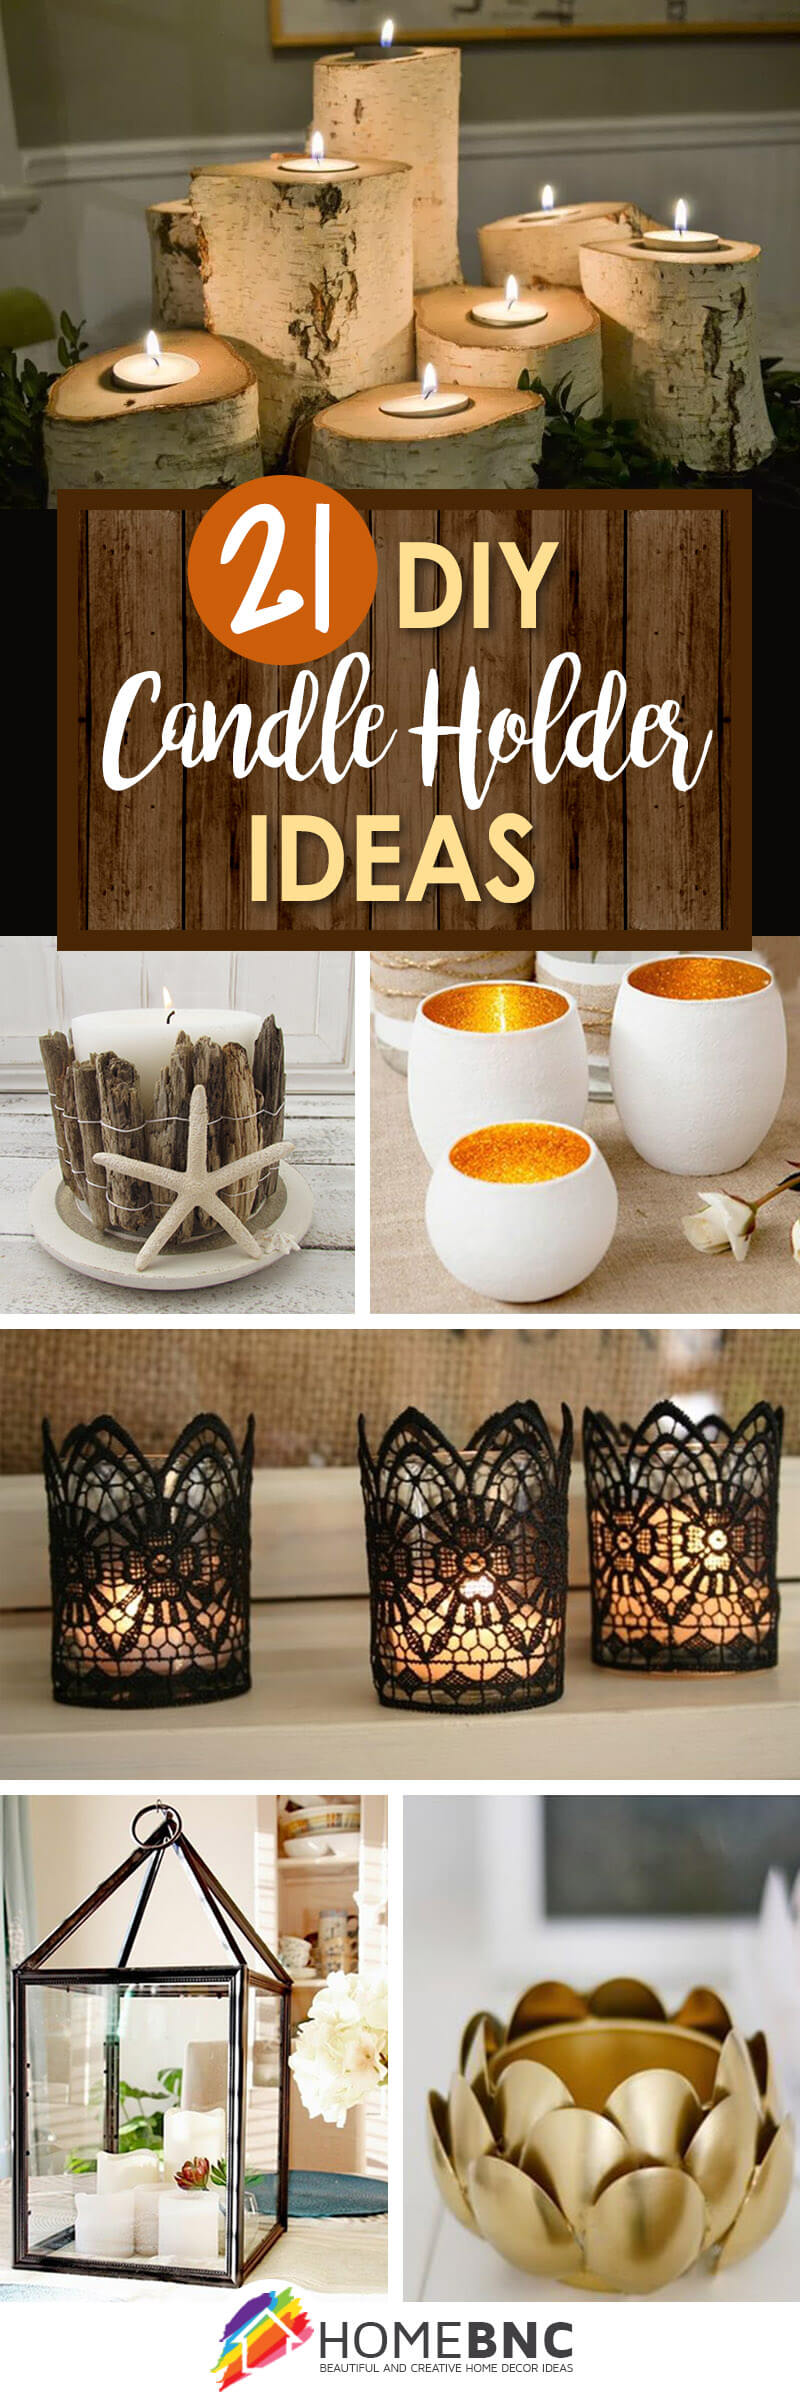 21 adorable diy candle holder ideas to make your home more inviting - Diy Candle Holders